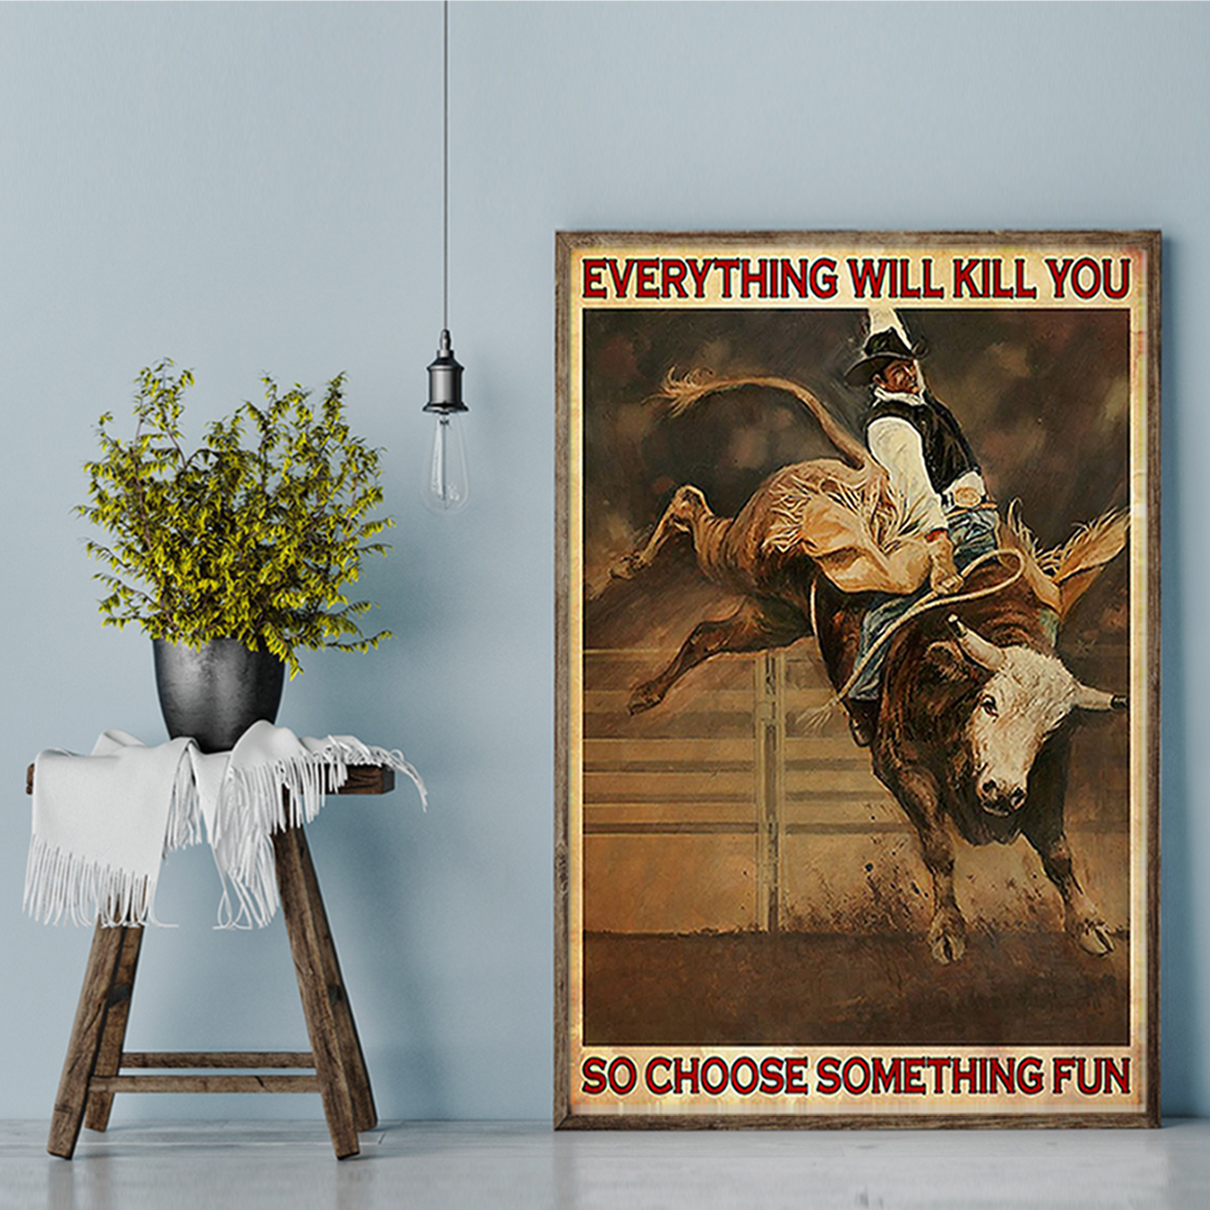 Bull riding rodeo everything will kill you so choose something fun poster A2